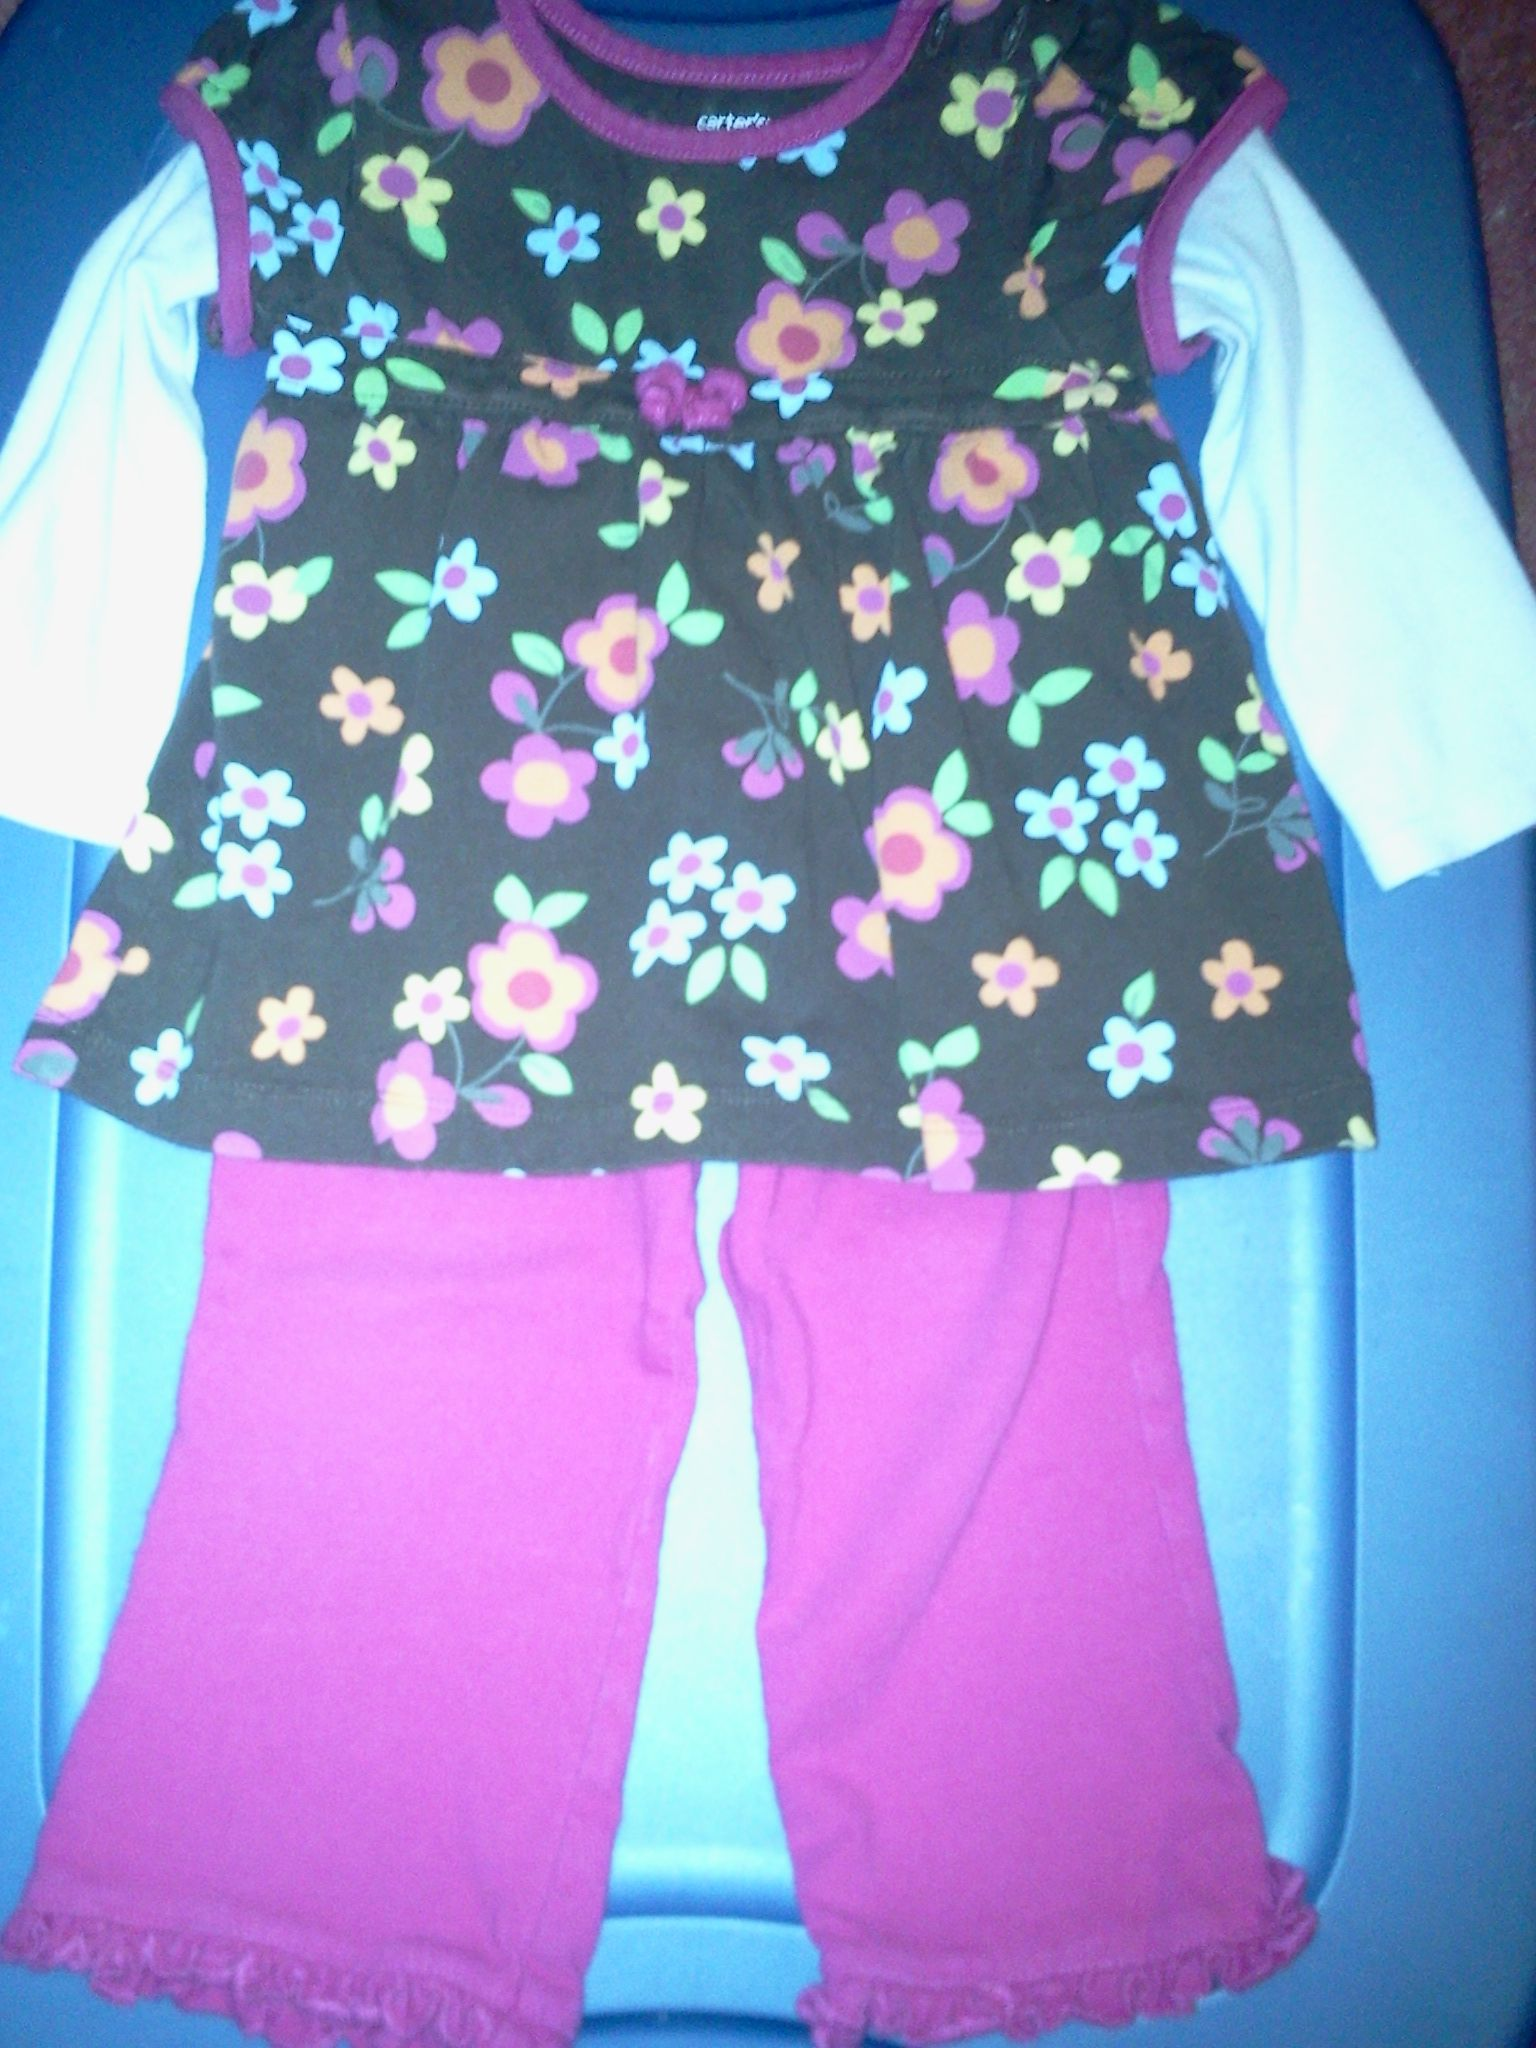 Carters 12m 2pc l/s pant set in Tiny_Treasures' Yard Sale Hartsville, TN for $3.00. Dark brown colorful flowered top with hot pink pant.